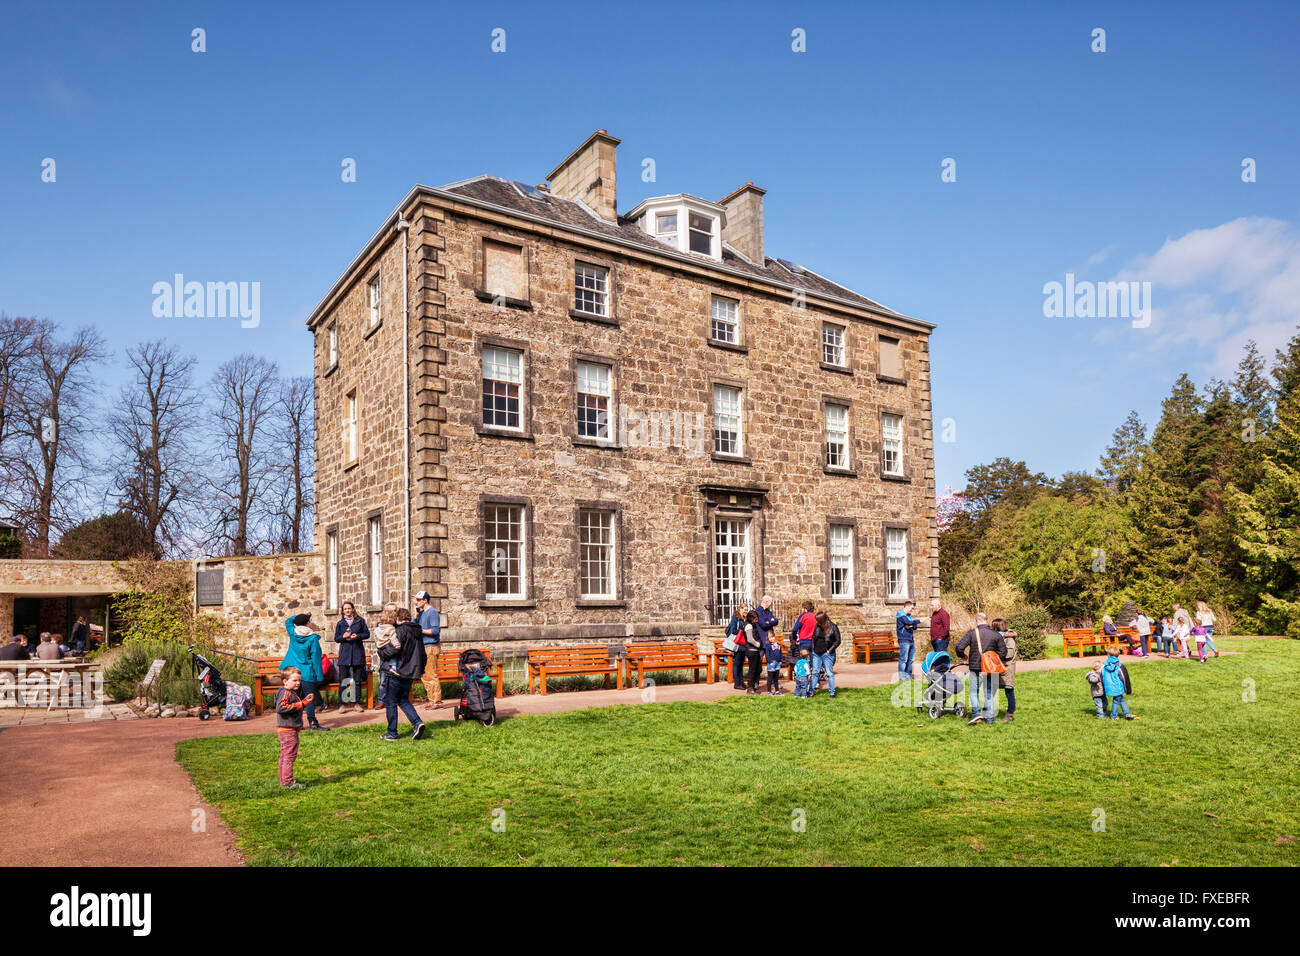 Inverleith House, Edinburgh Roal Botanic Gardens, Edinburgh, Scotland, UK - Stock Image